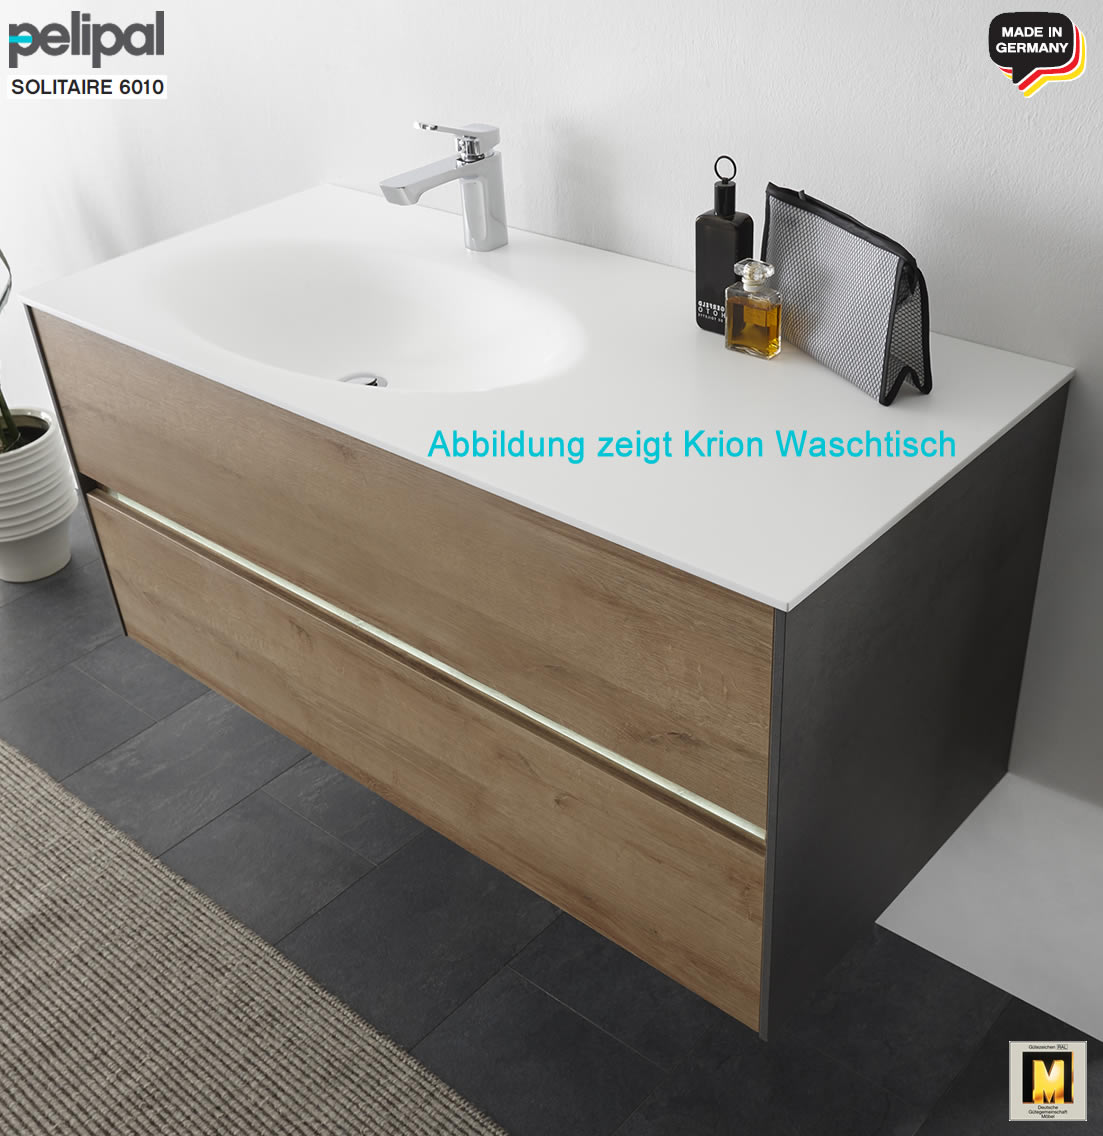 pelipal solitaire 6010 badm bel set mit 113 cm waschtisch l w hlbar und unterschrank led. Black Bedroom Furniture Sets. Home Design Ideas